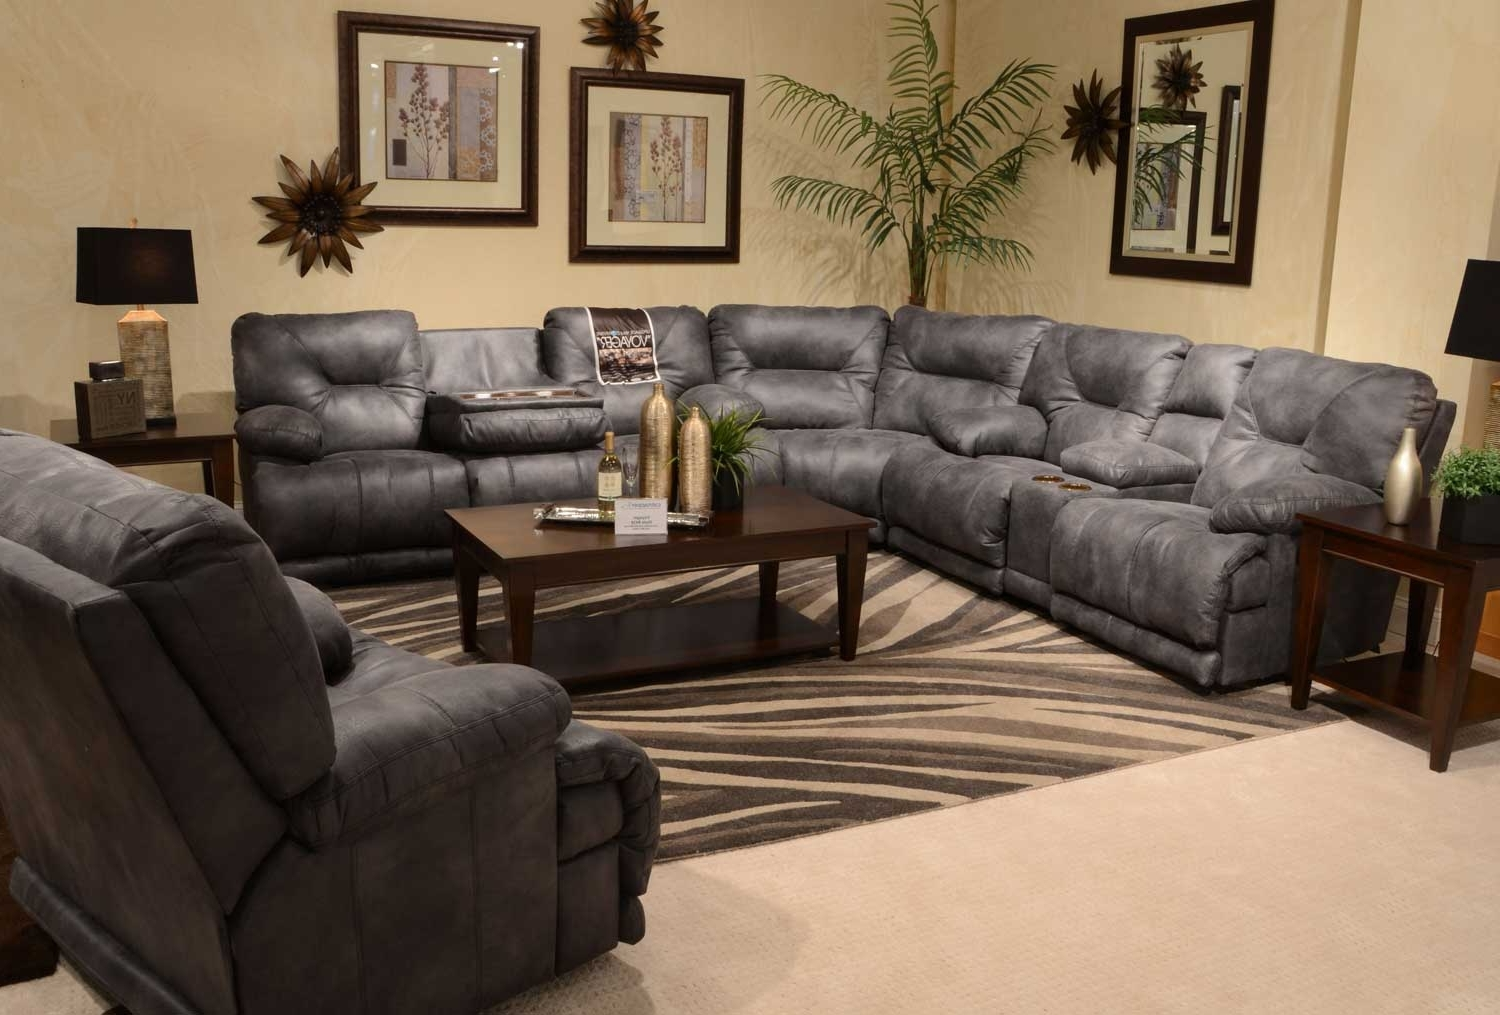 Catnapper Voyager Sectional With Lay Flat 3 Recliner Sofa, Console Intended For Favorite Sectional Sofas With Consoles (View 2 of 15)